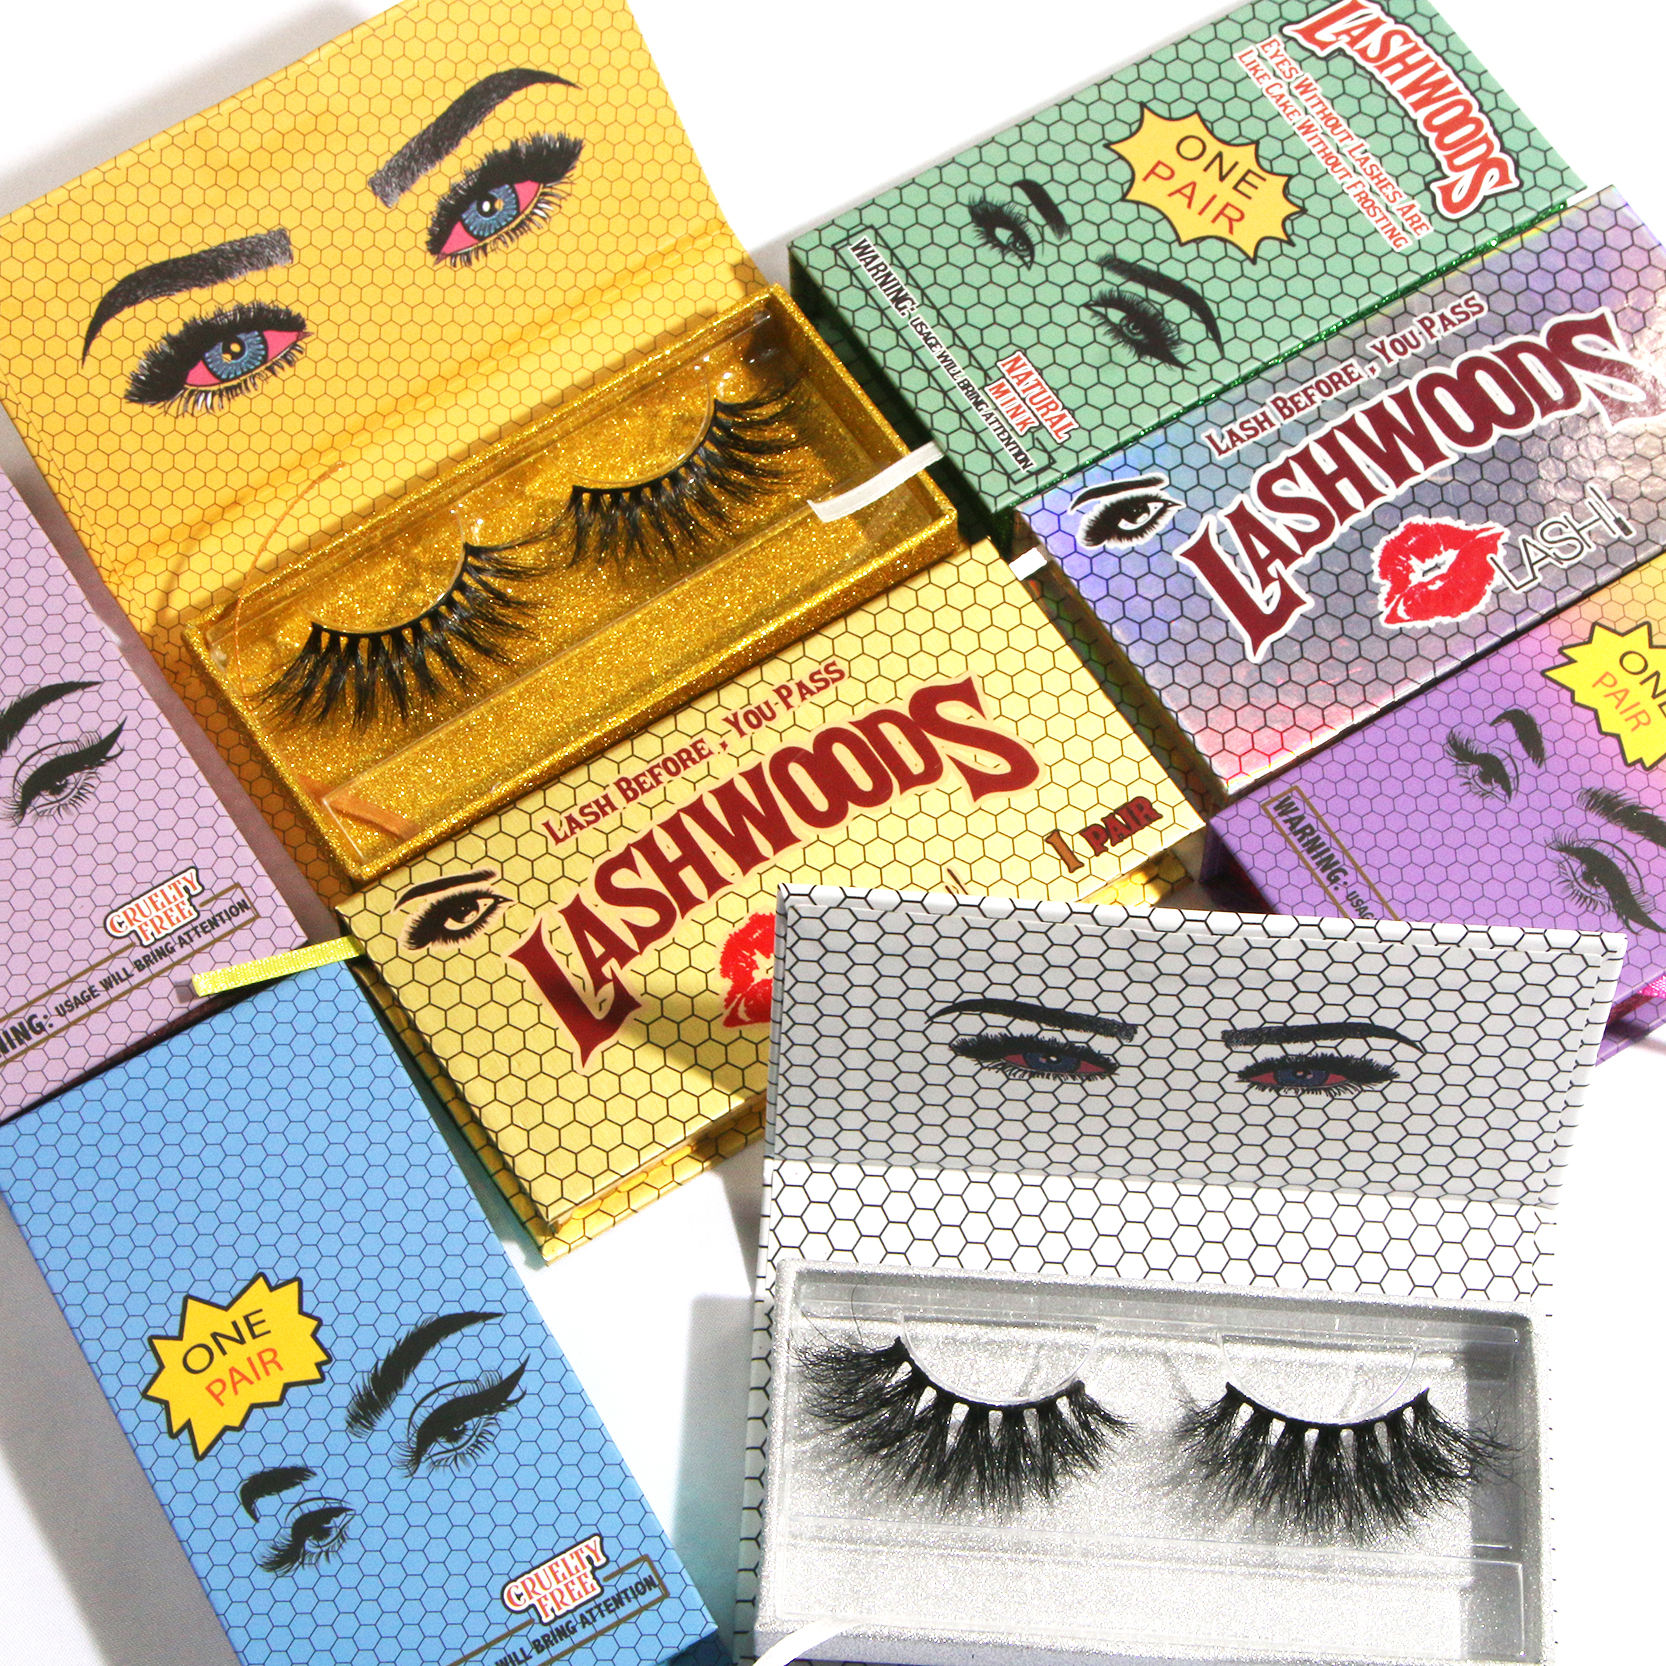 Free Sample 25mm 3D Wispy Mink Eyelashes Vendor Luxury 25 mm 3D Mink Eyelash Lashes Vendor